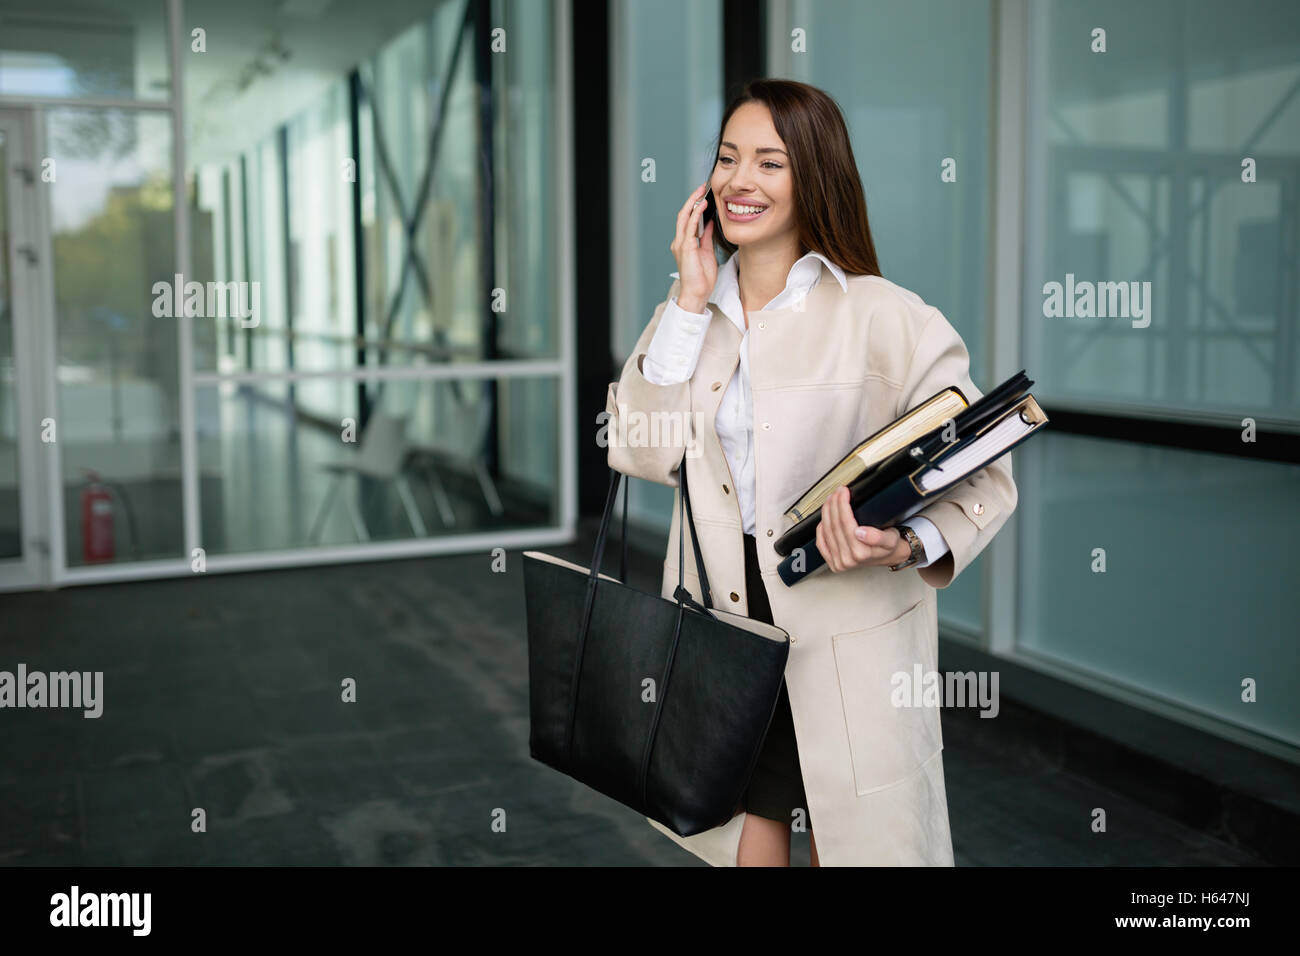 Busy ceo business woman going to work - Stock Image